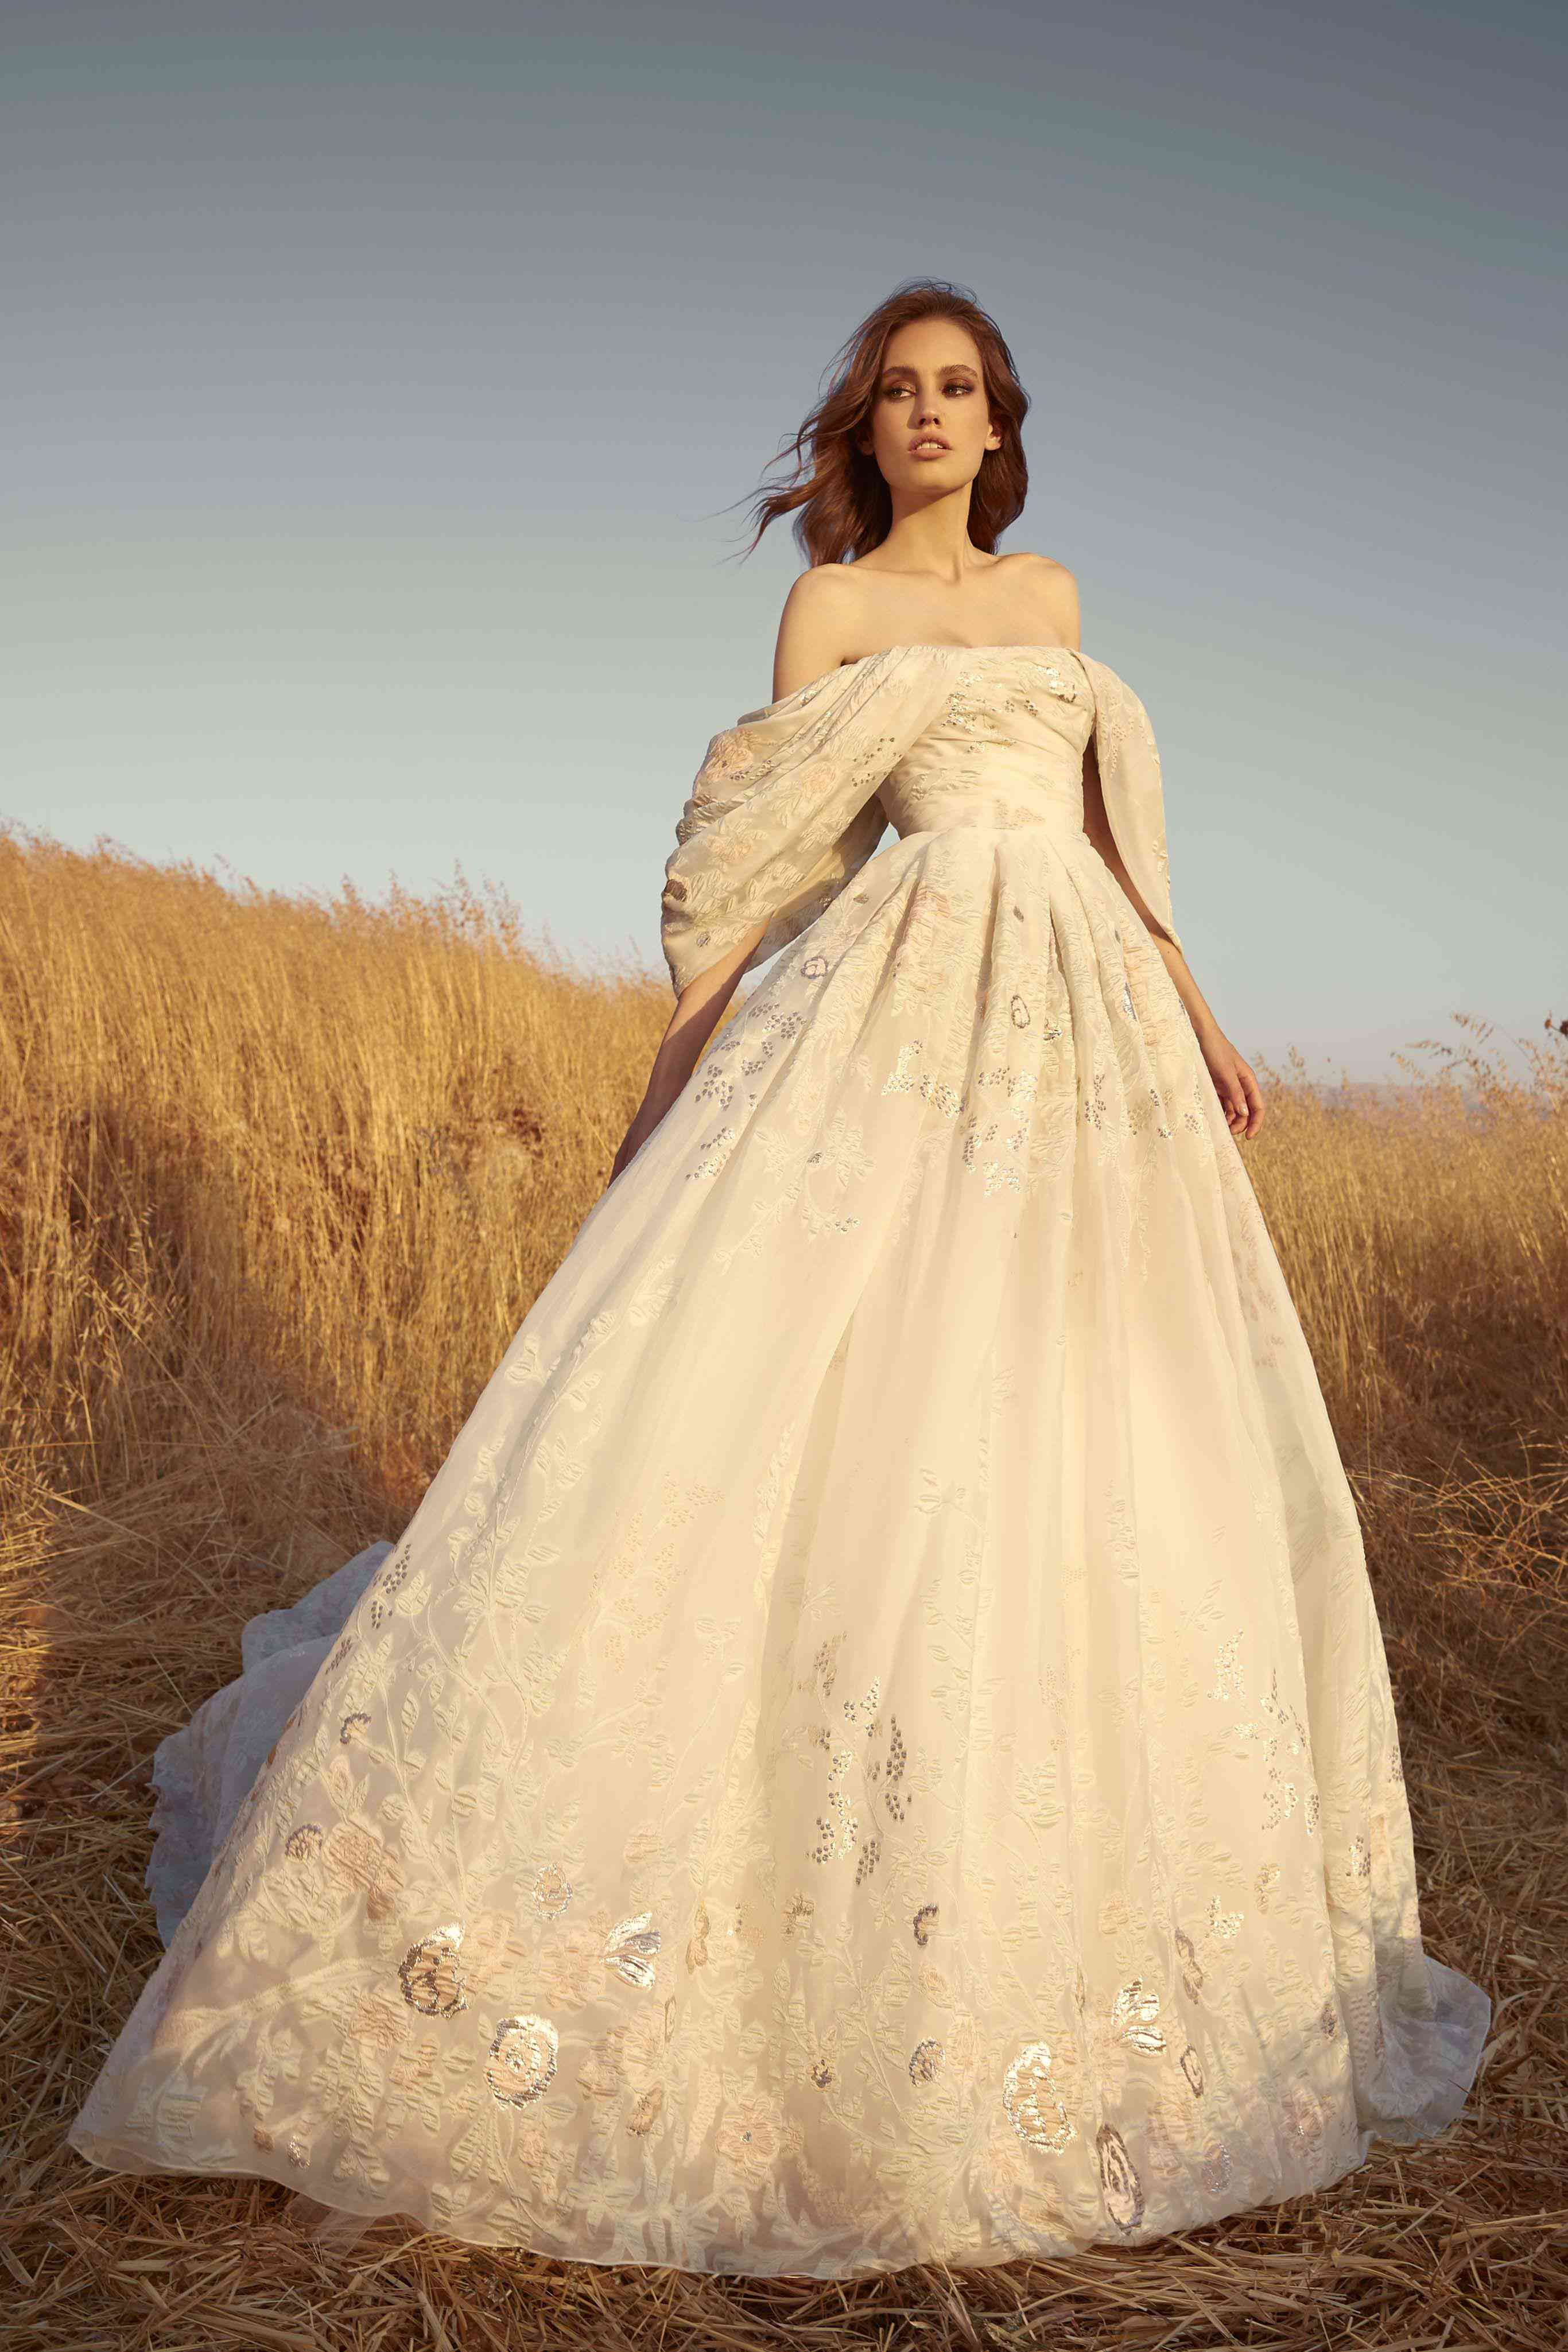 Model in a draped strapless dress of pastel multi-colored embroidery and off-shoulder dropped sleeves